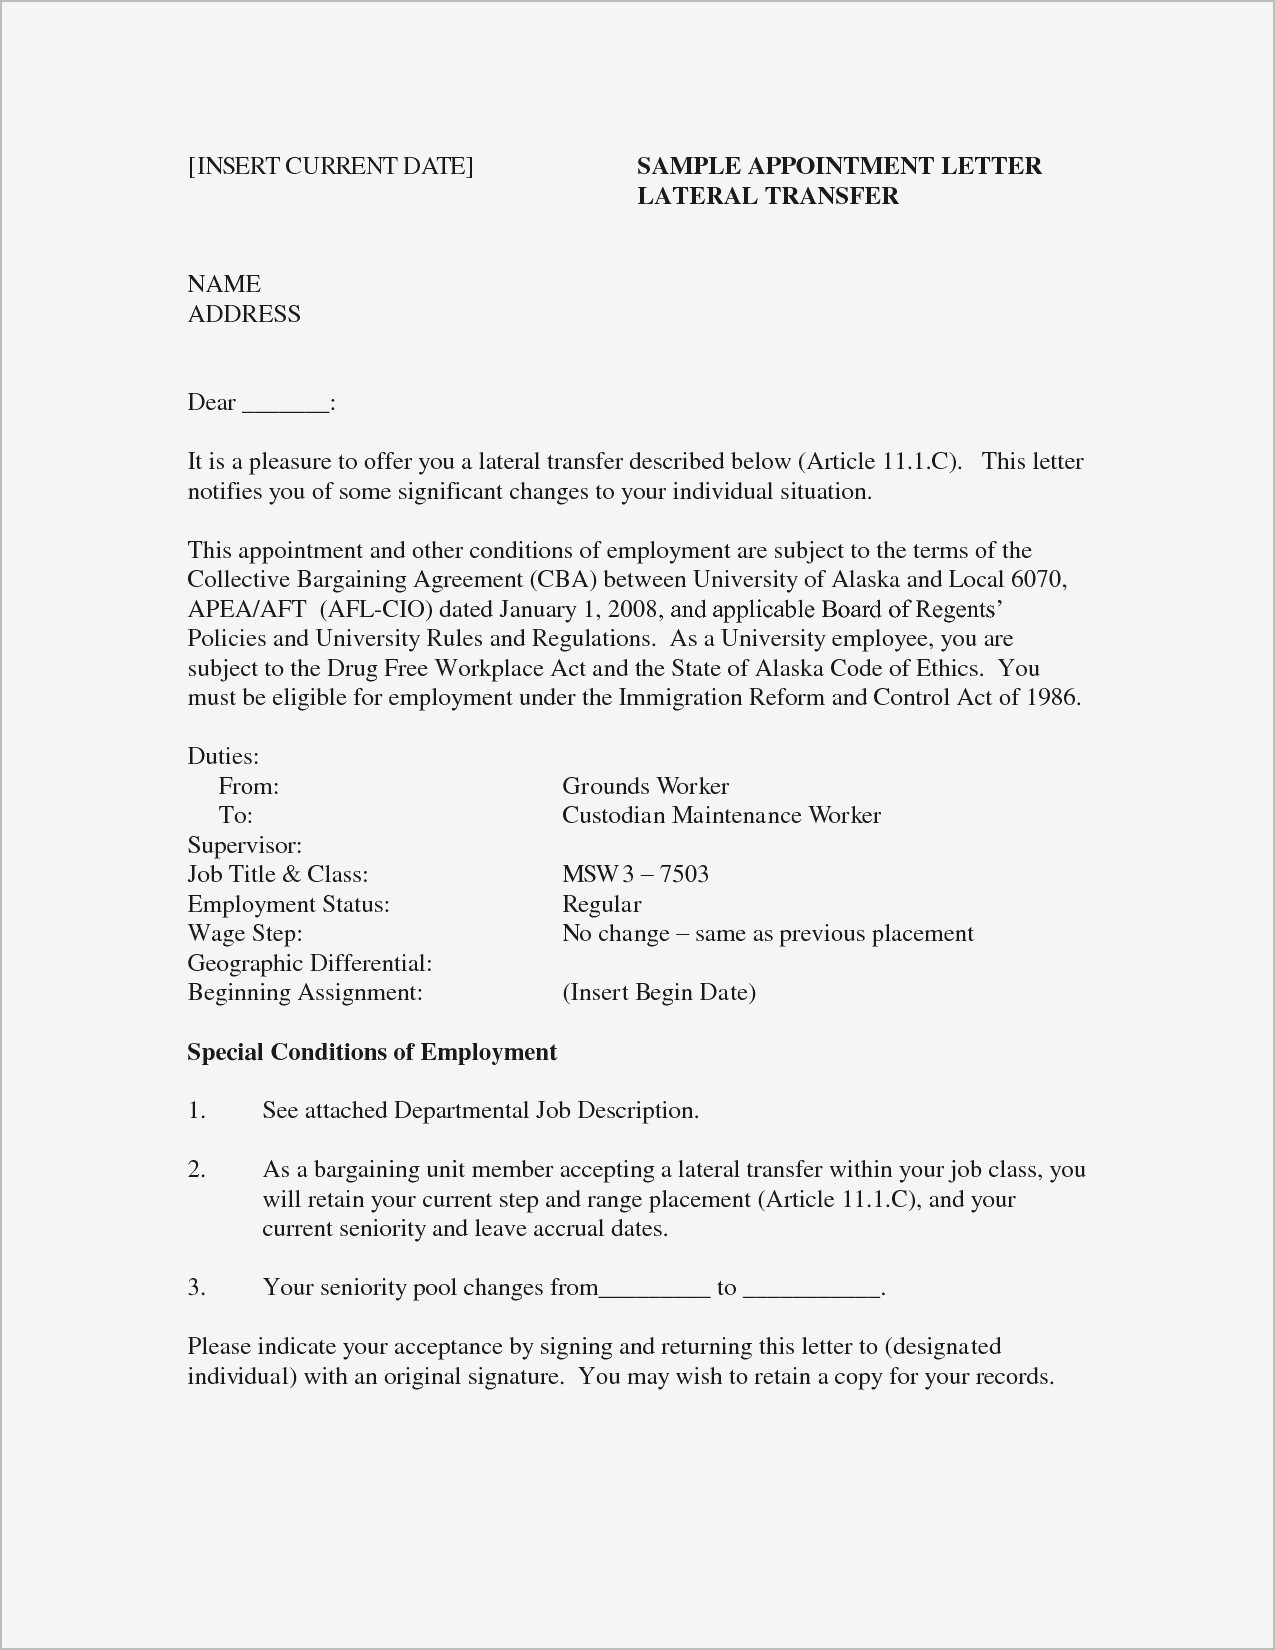 Formal Offer Letter Template - formal Fer Letter Inspirational Job Fer Letter Template Us Copy Od